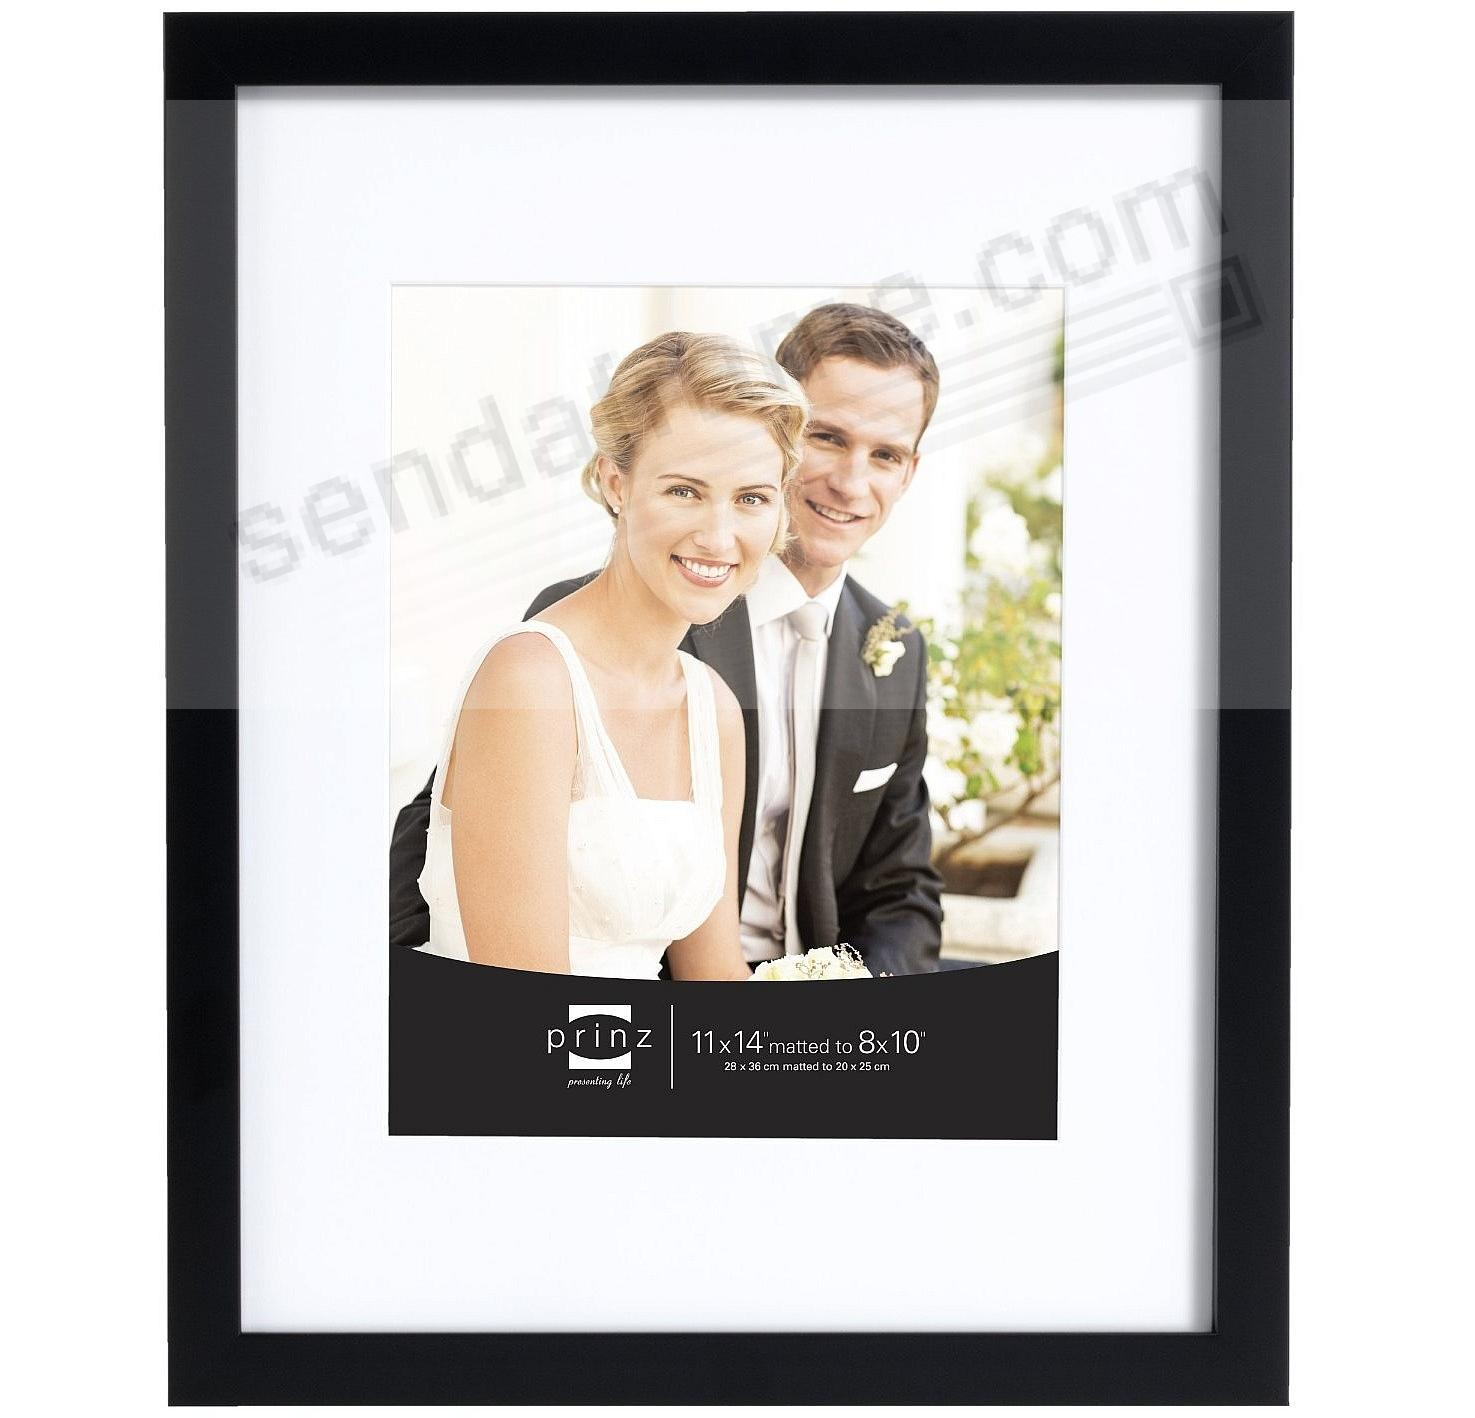 WEDDING GALLERY Black 11x14/8x10 frame w/white mat by Prinz ...